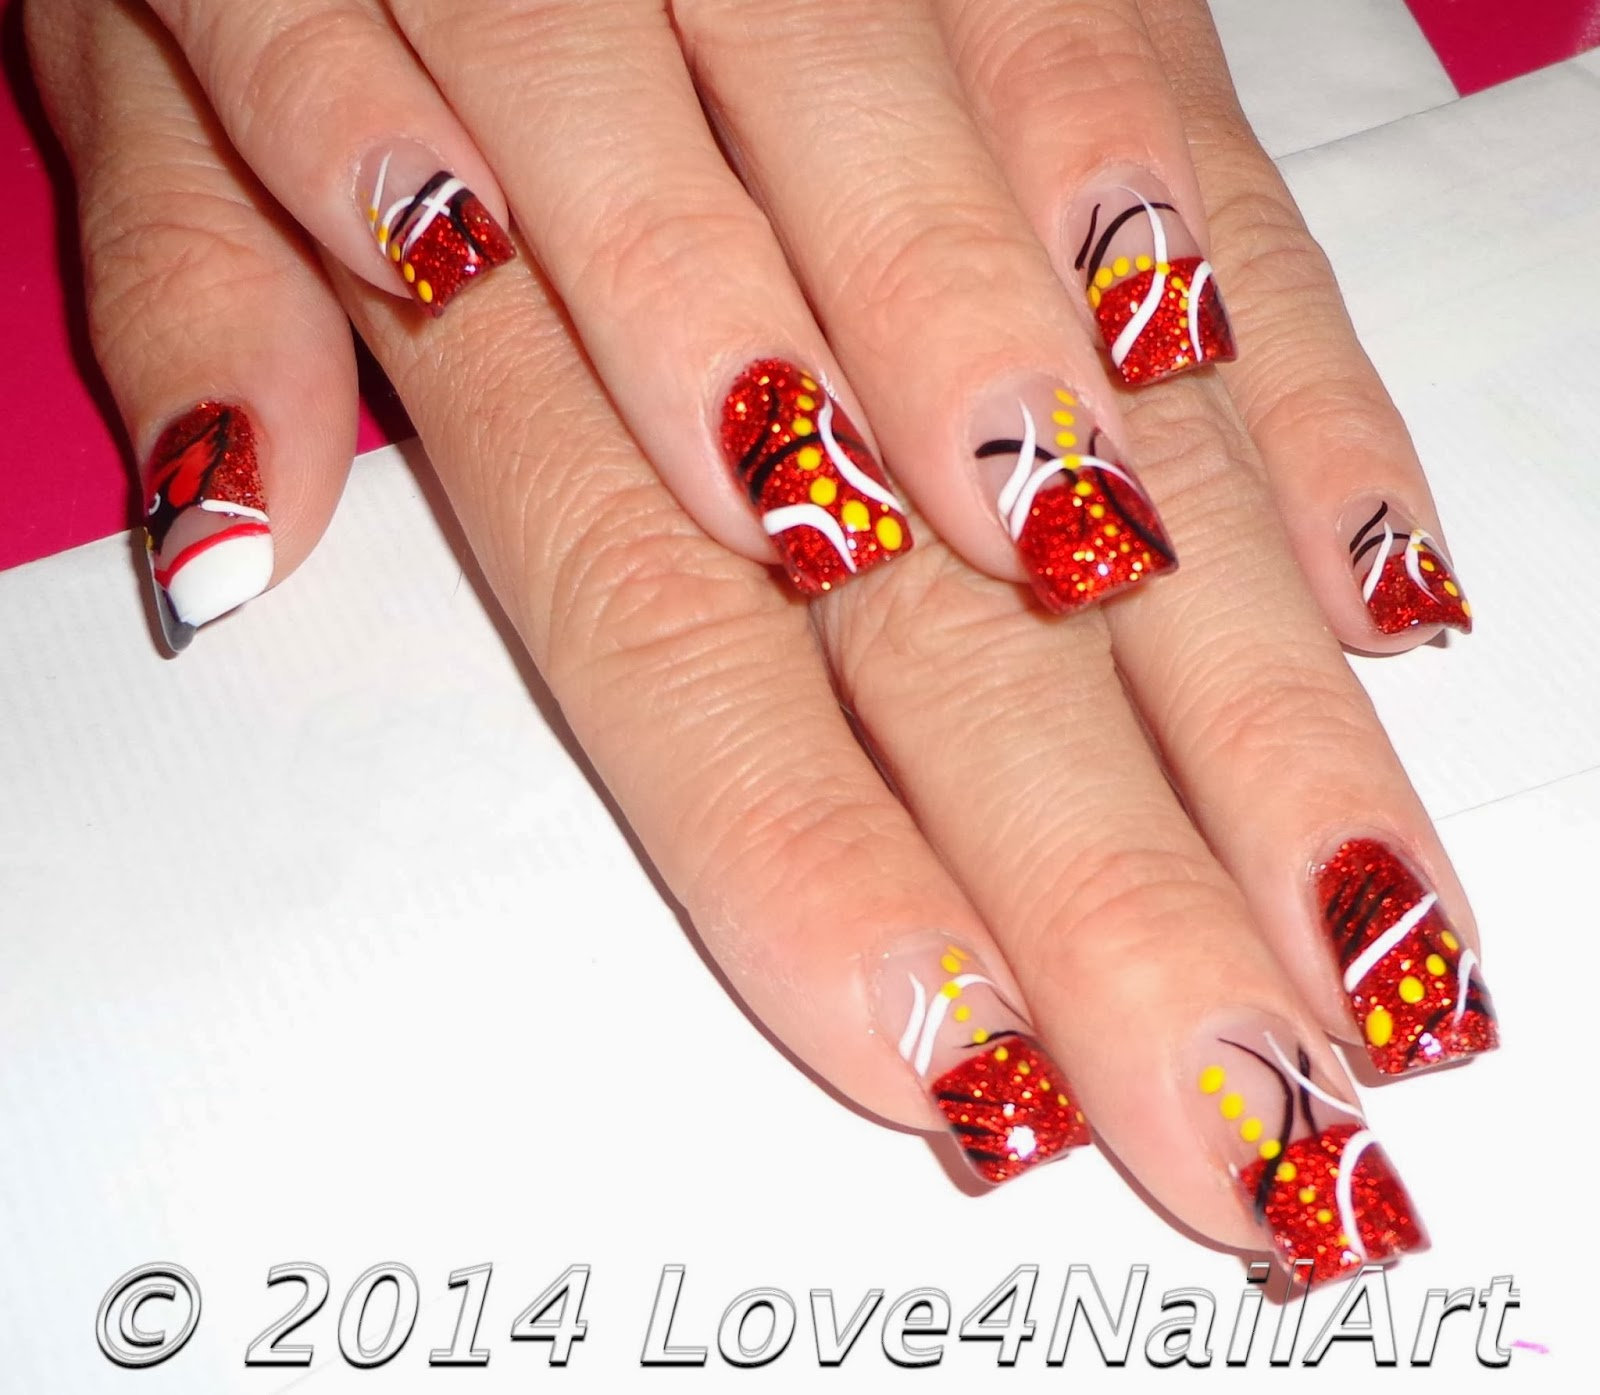 Please Let Me Know If You Give This Nail Art Design A Try